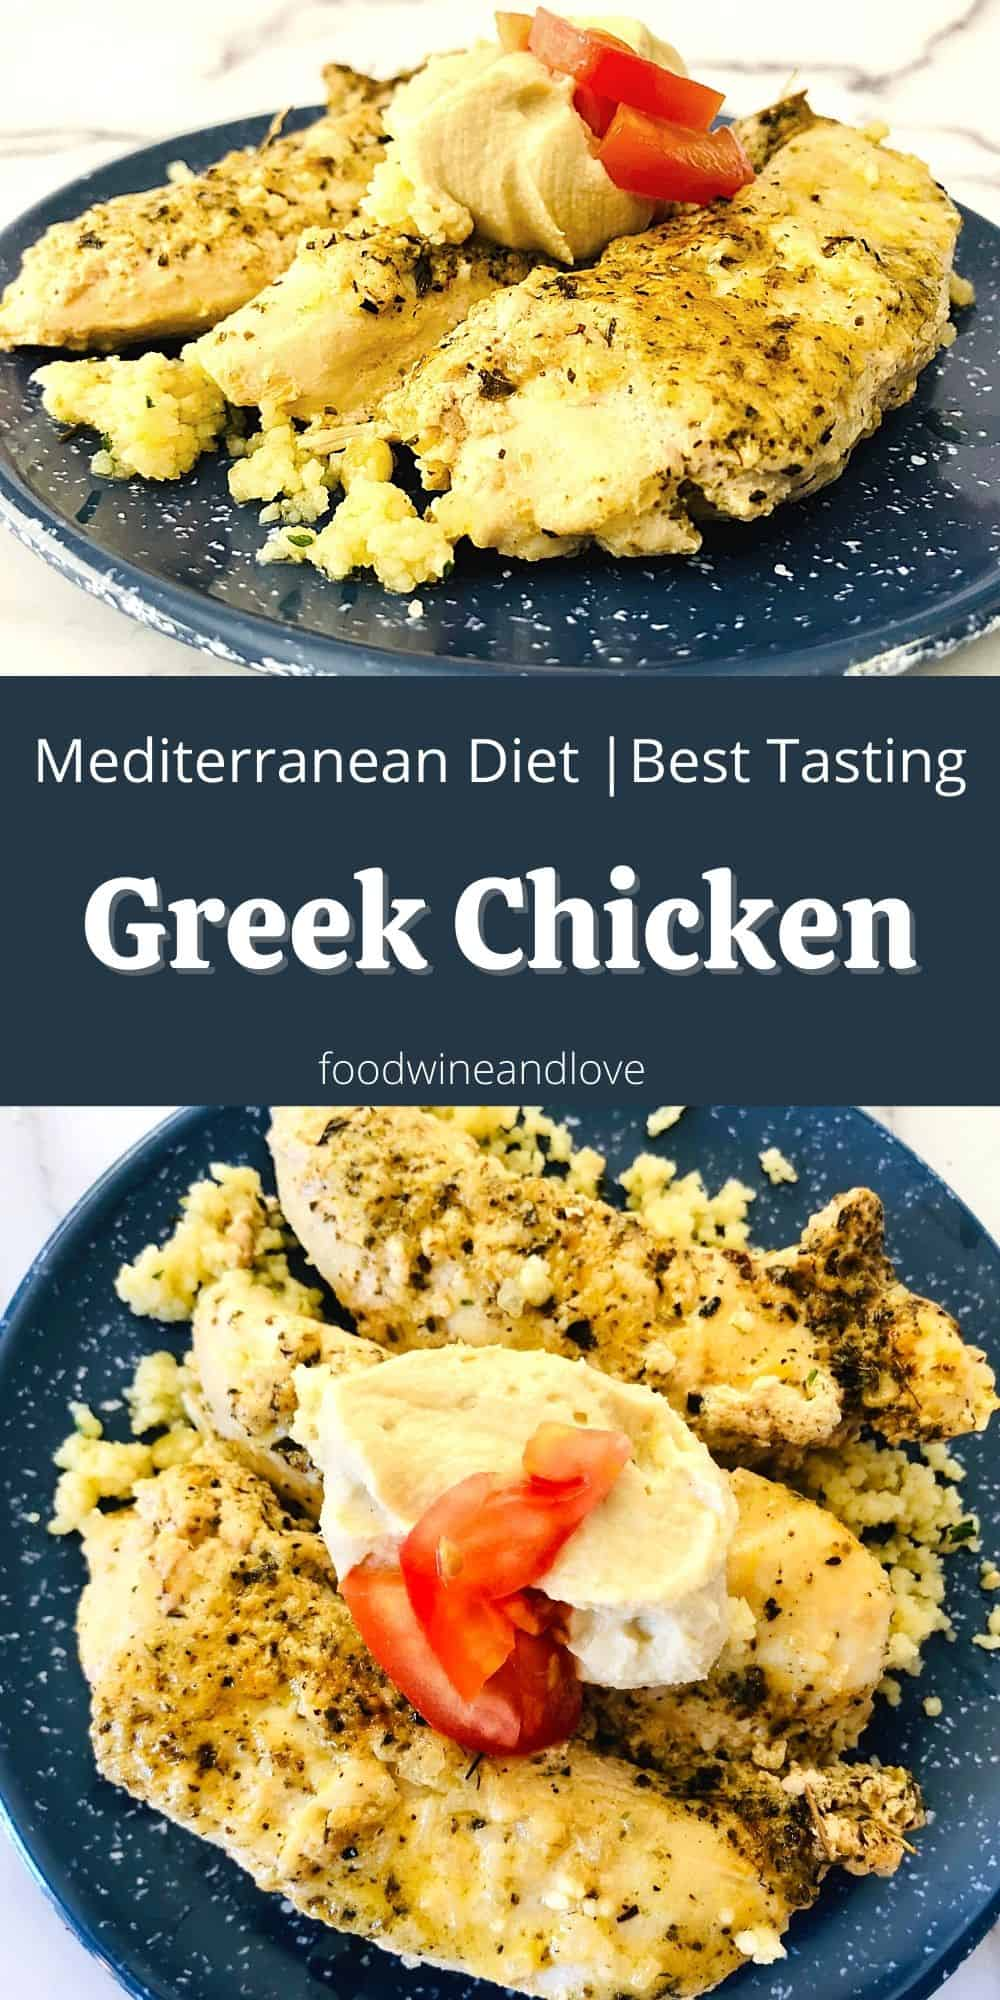 Best Tasting Greek Chicken